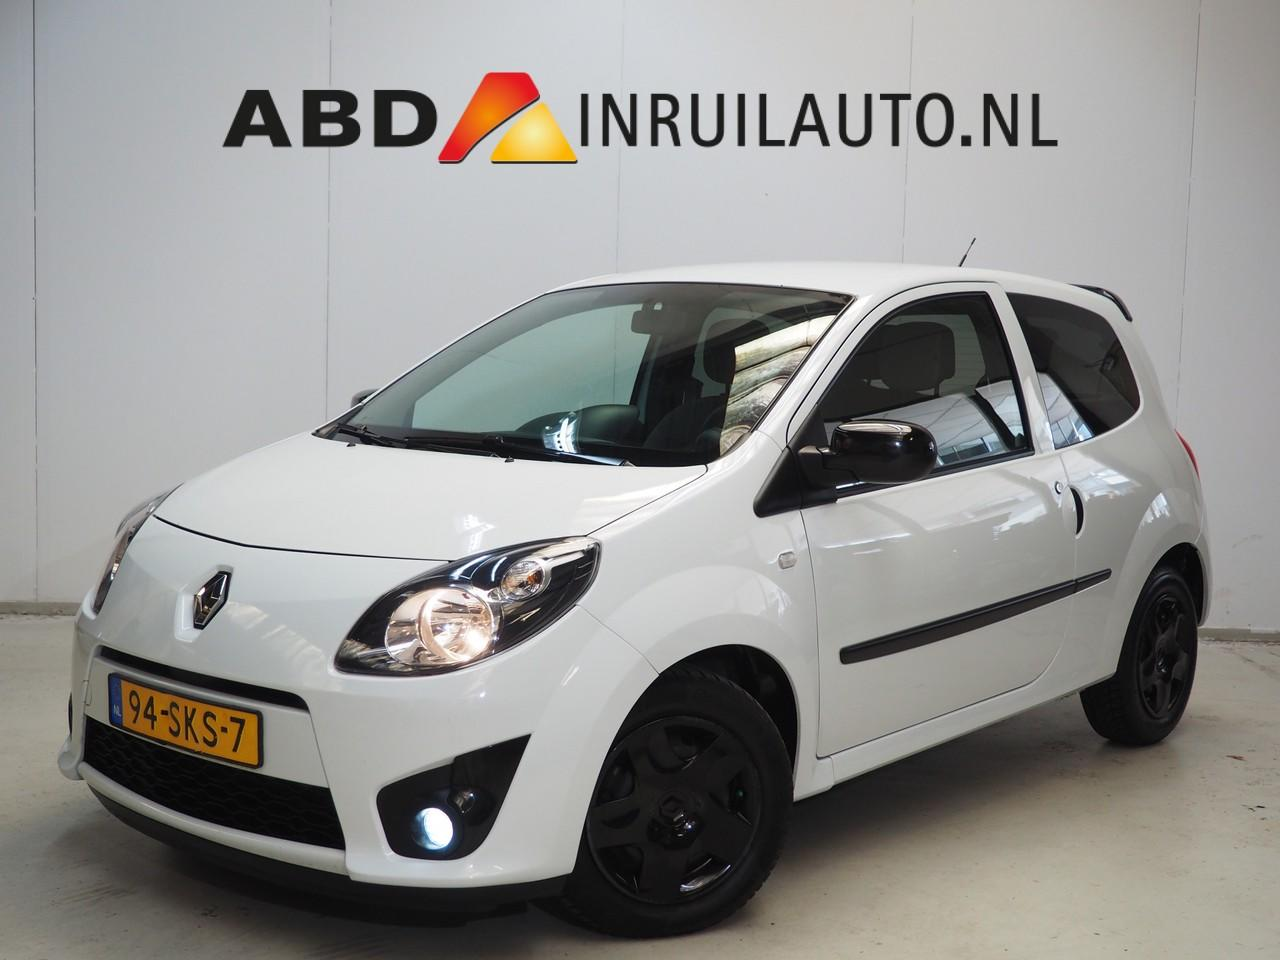 Renault Twingo 1.5 dci collection, airco, cruise, spoiler, nette auto